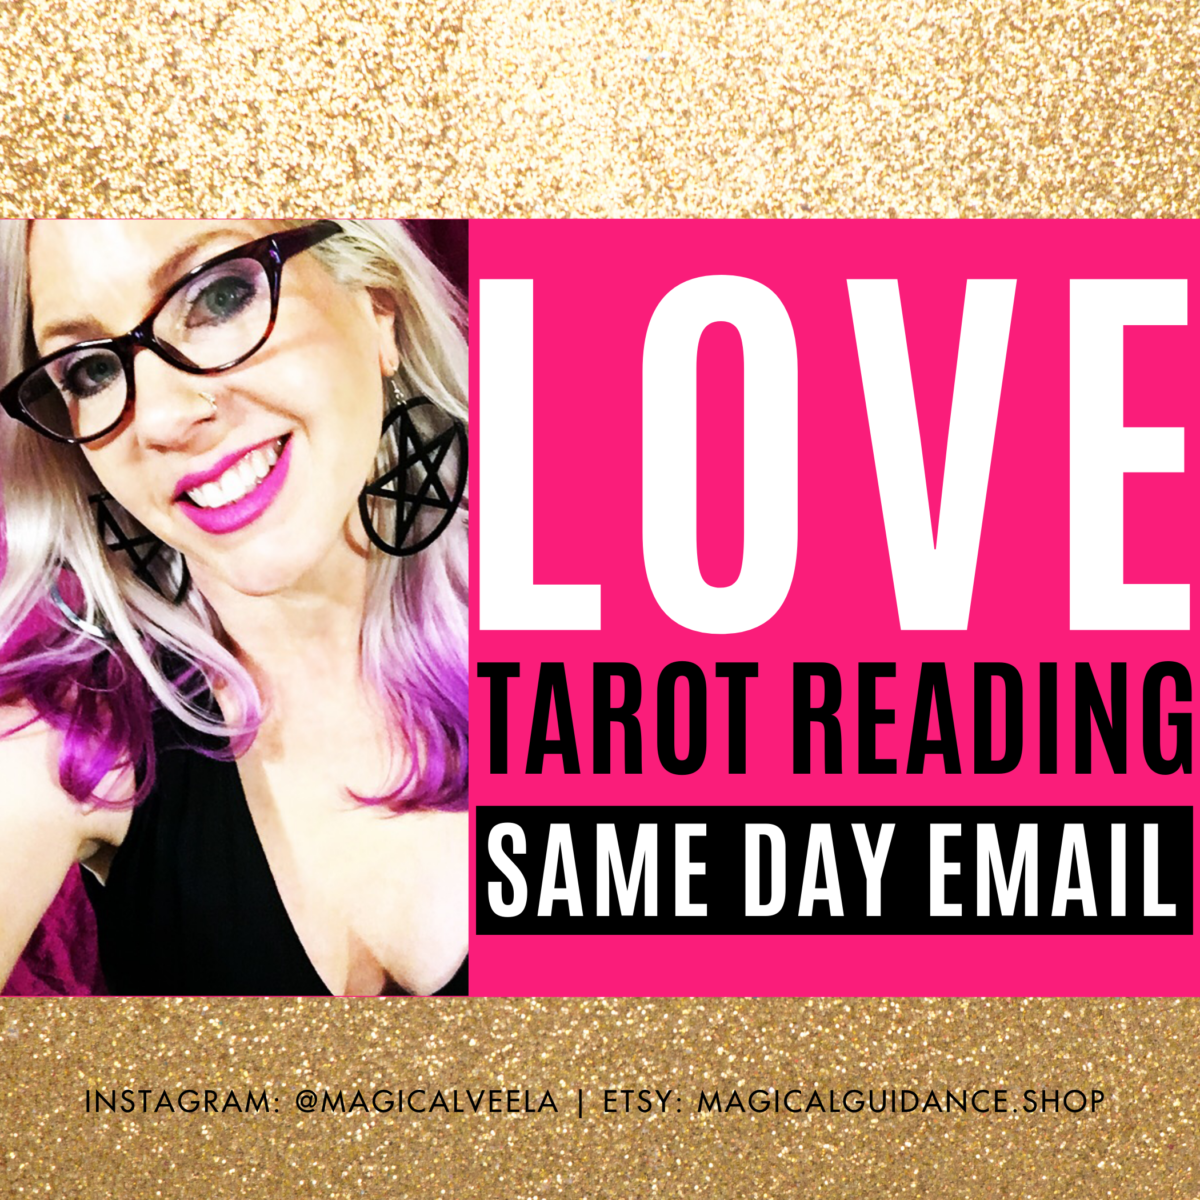 love reading psychic tarot soulmate reading etsy | magicalguidance.shop